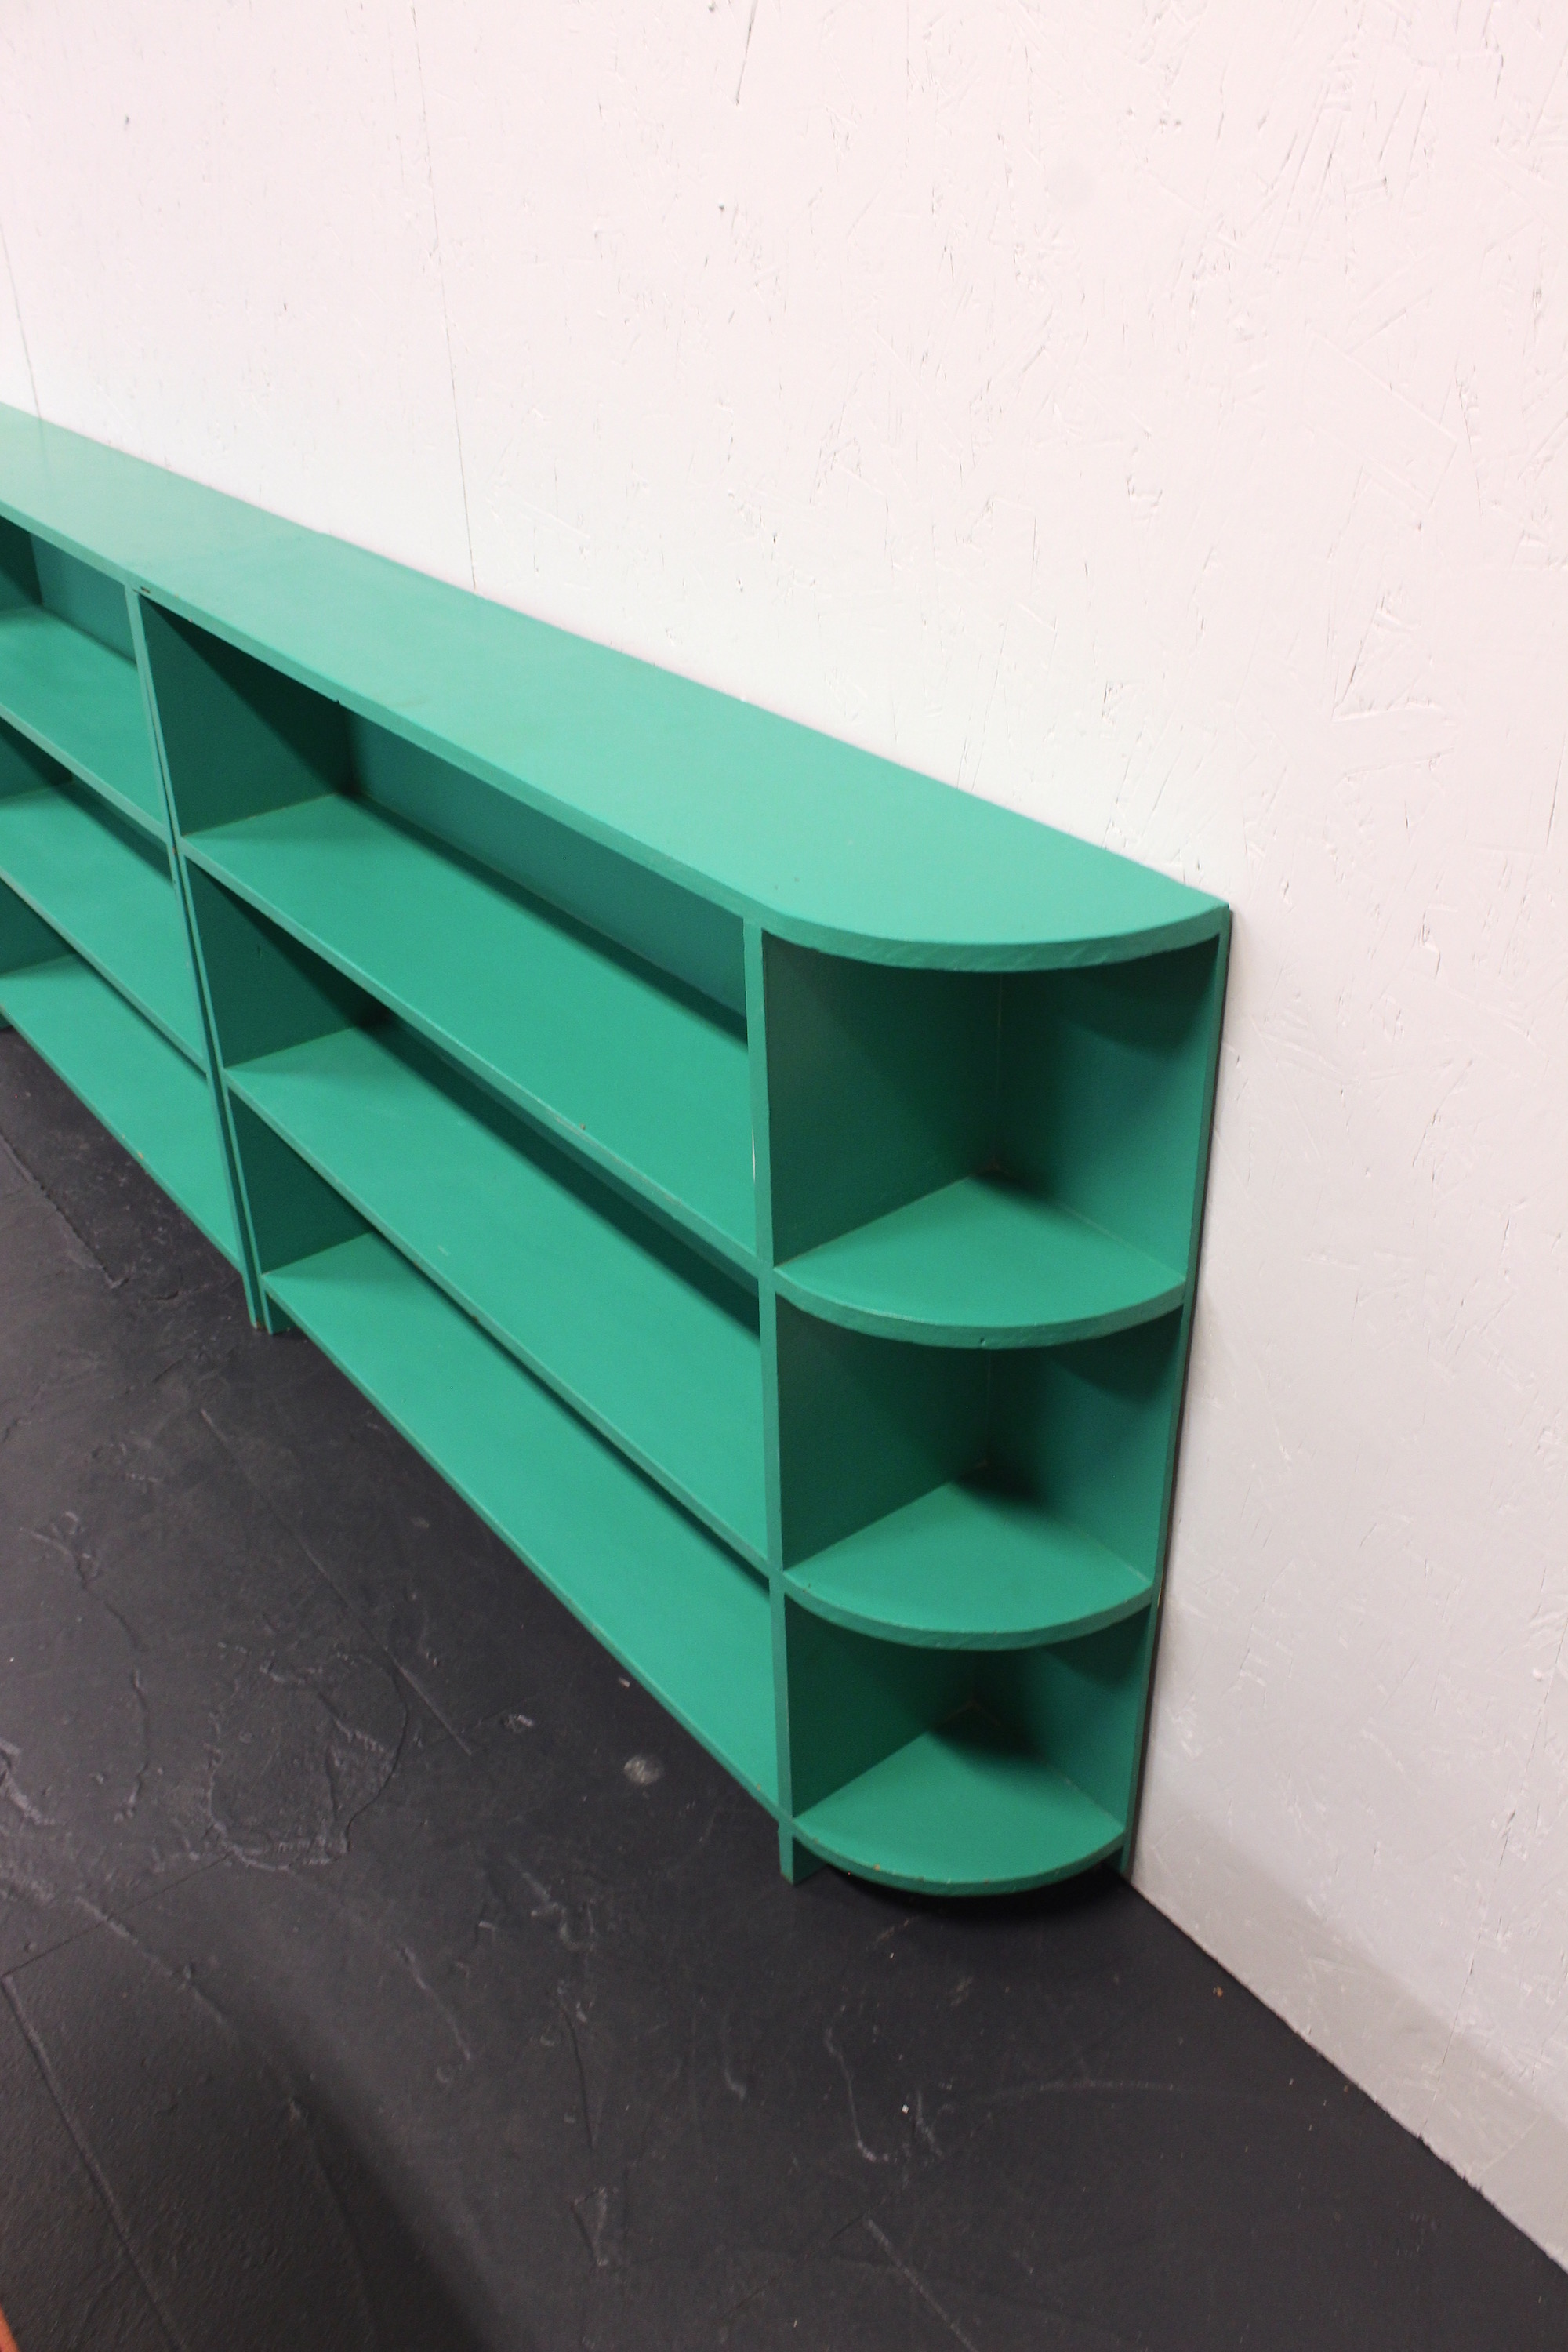 Pair Of Turquoise Painted Bookshelves — Tiny Beaches